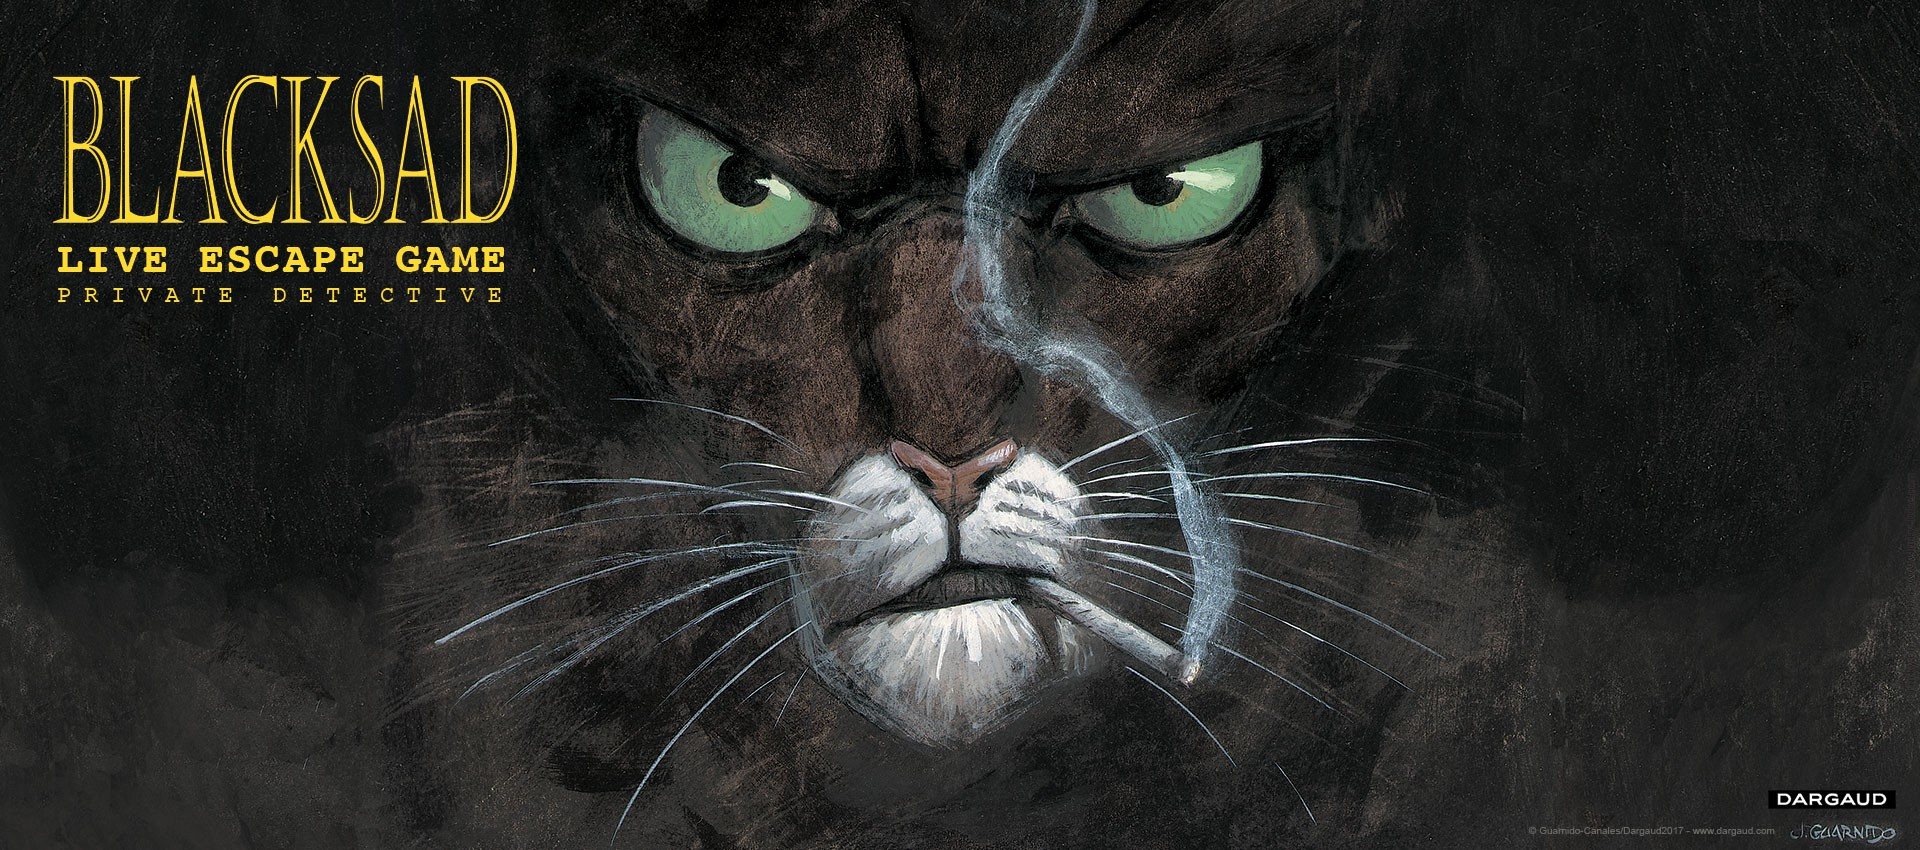 Blacksad needs you!